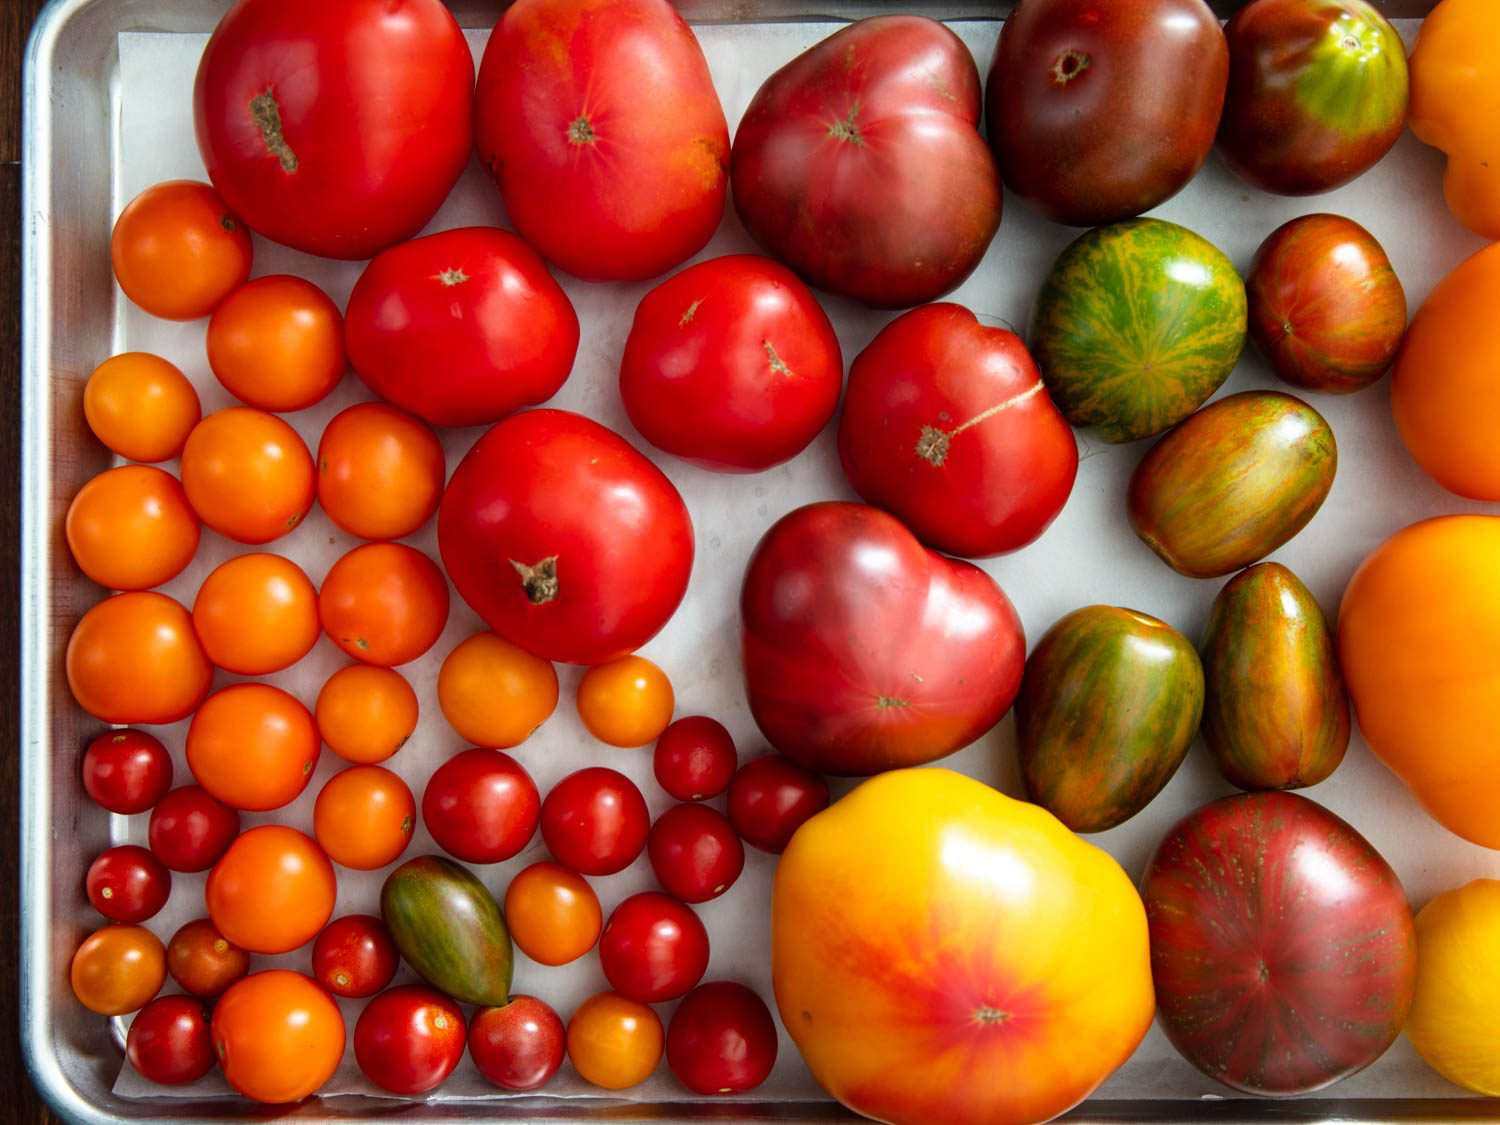 Overhead view of a tray of whole tomatoes of different sizes and colors.